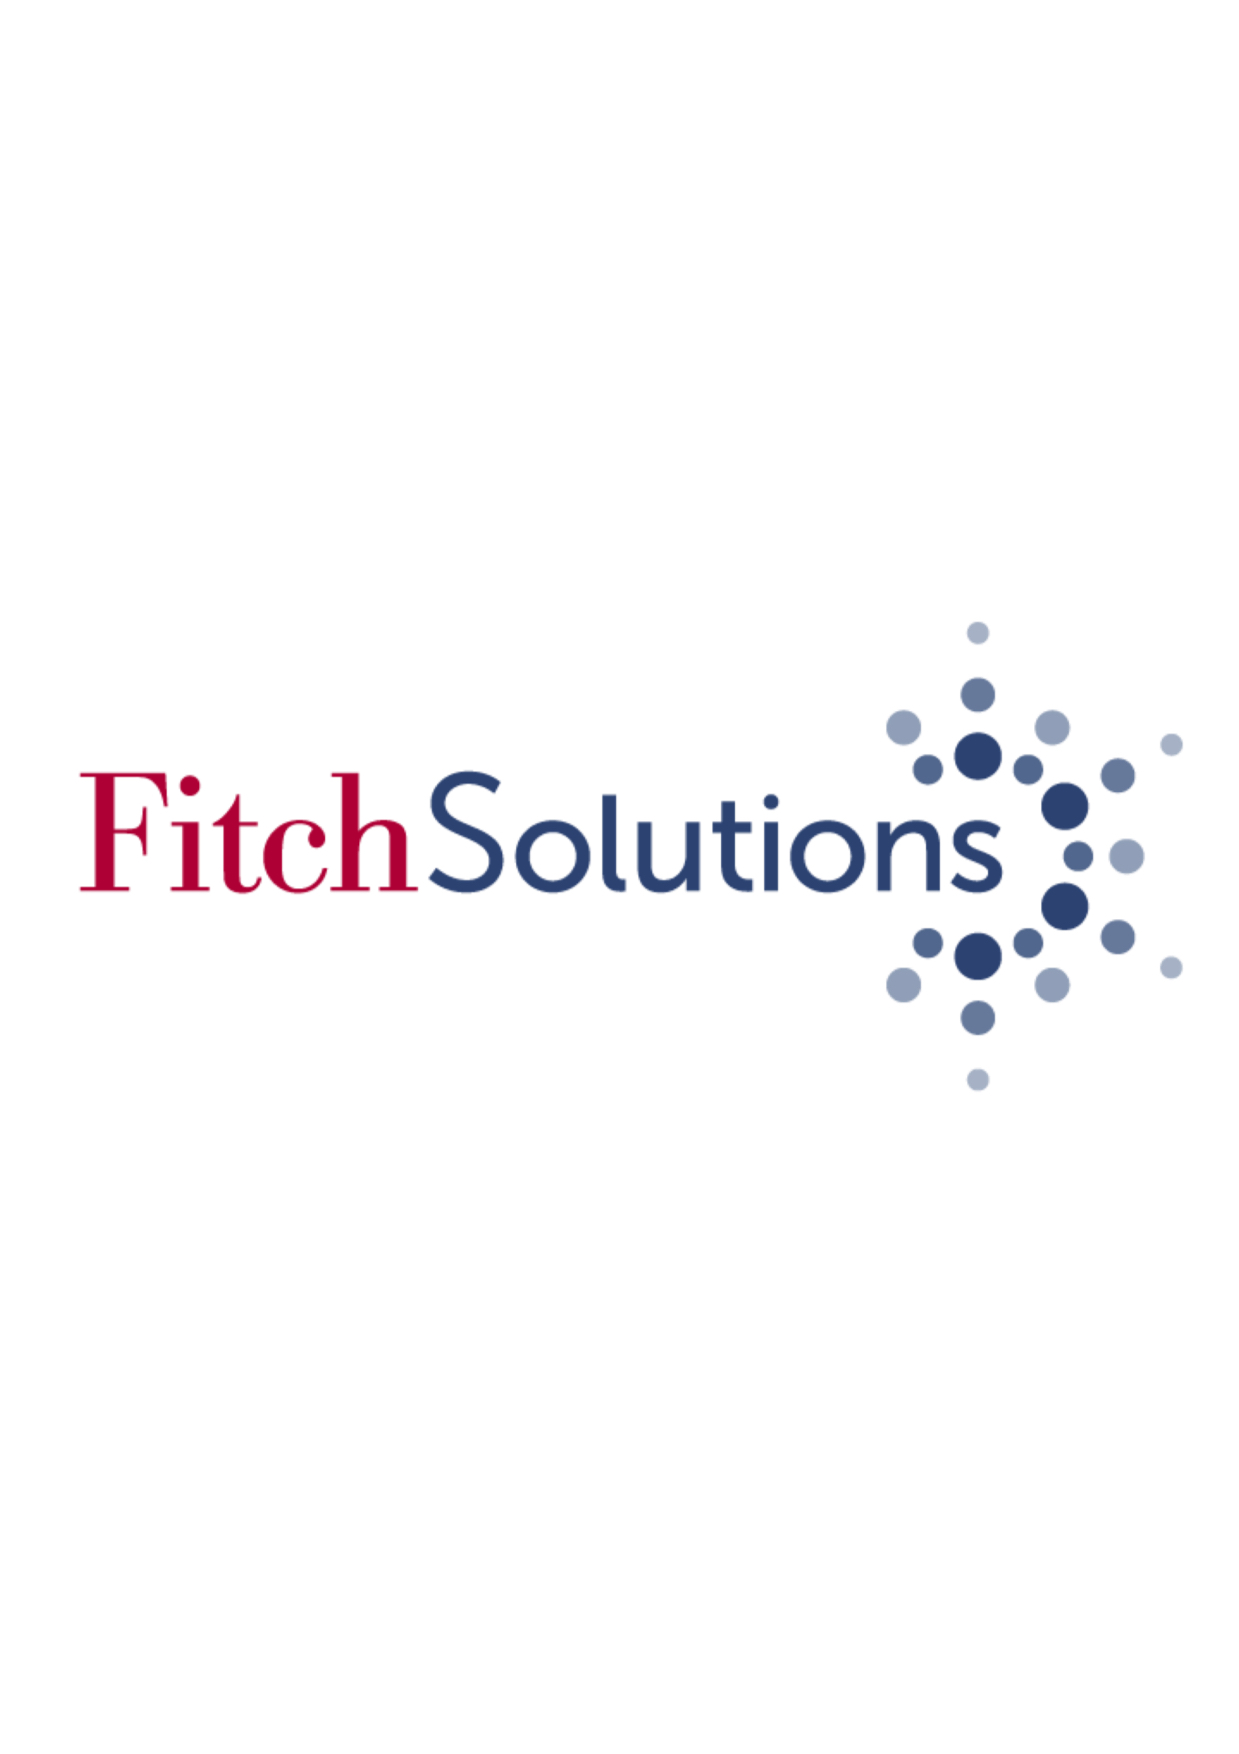 Supervision, Risks & Profitability 2019 Fitch Solutions Logo